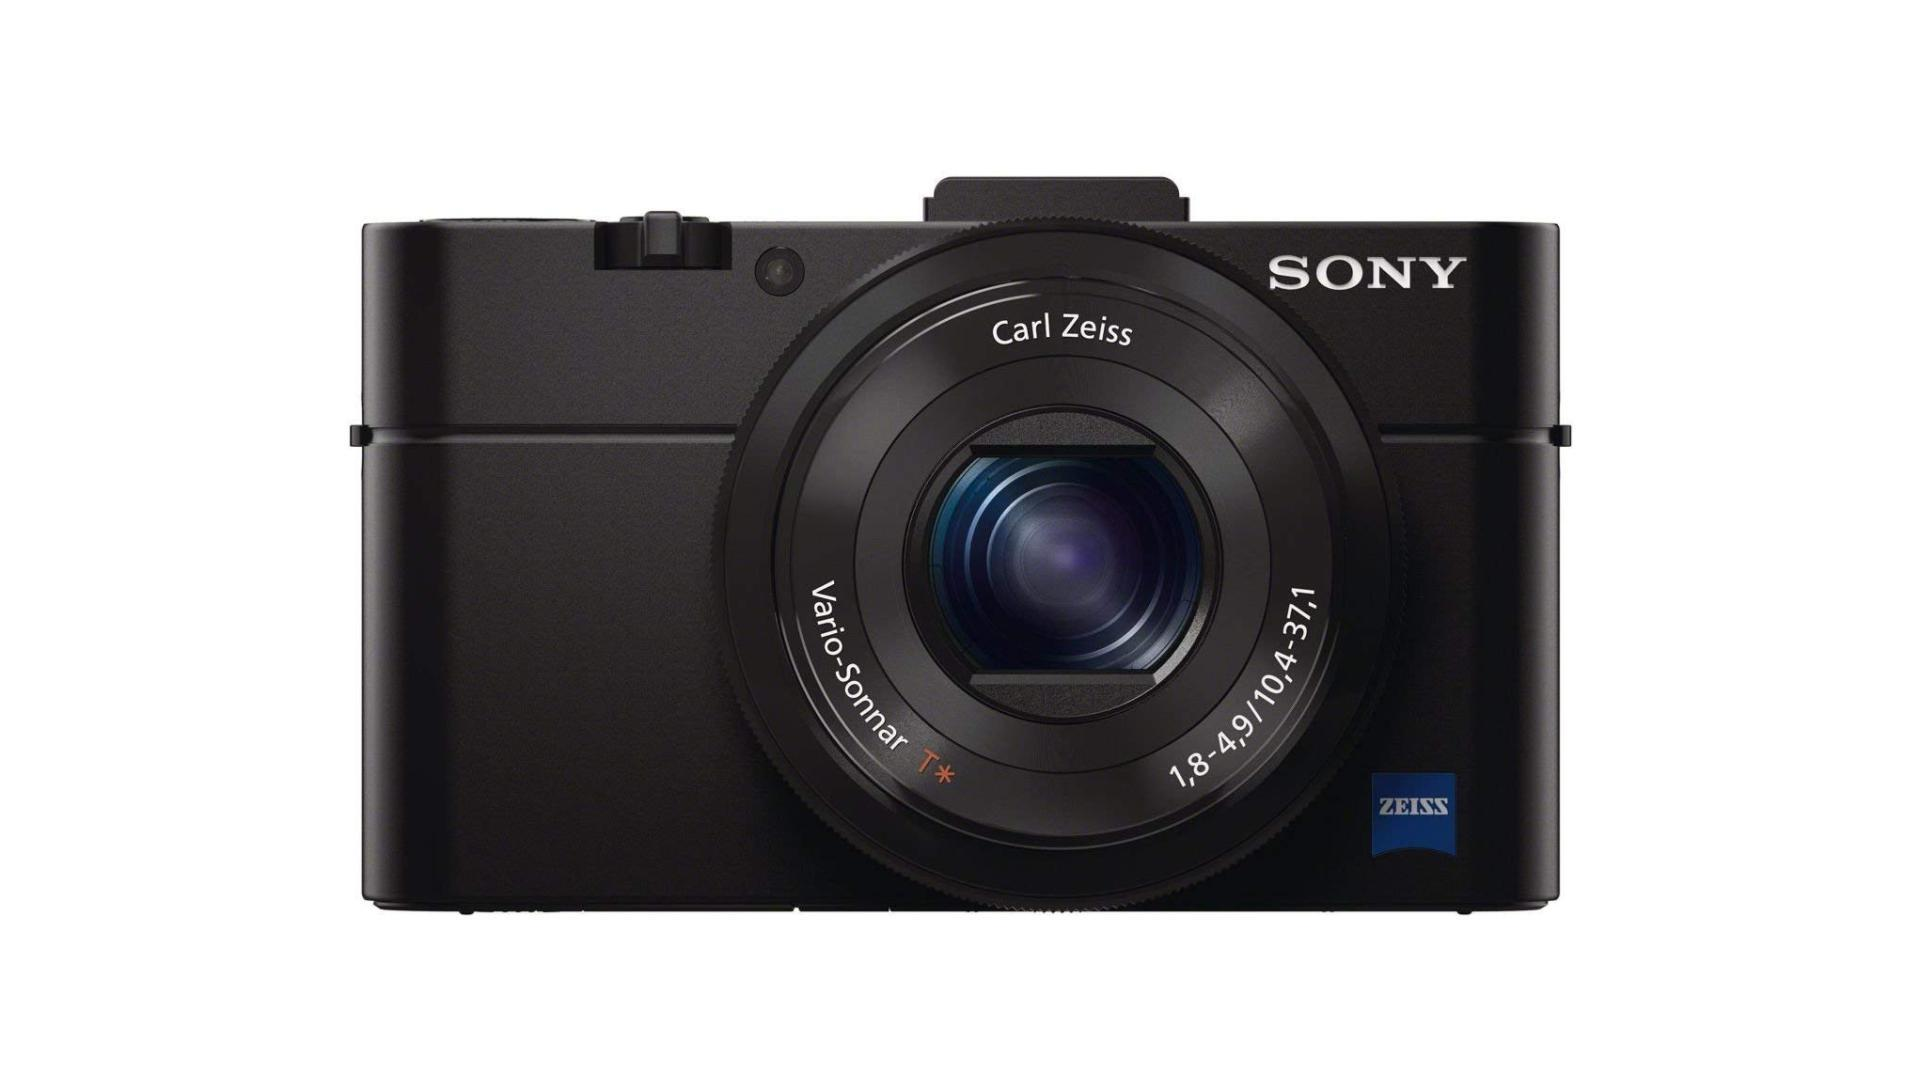 🔥 Cyber Monday : l'appareil photo Compact Sony DSC-RX100M2 à 399 euros chez Amazon